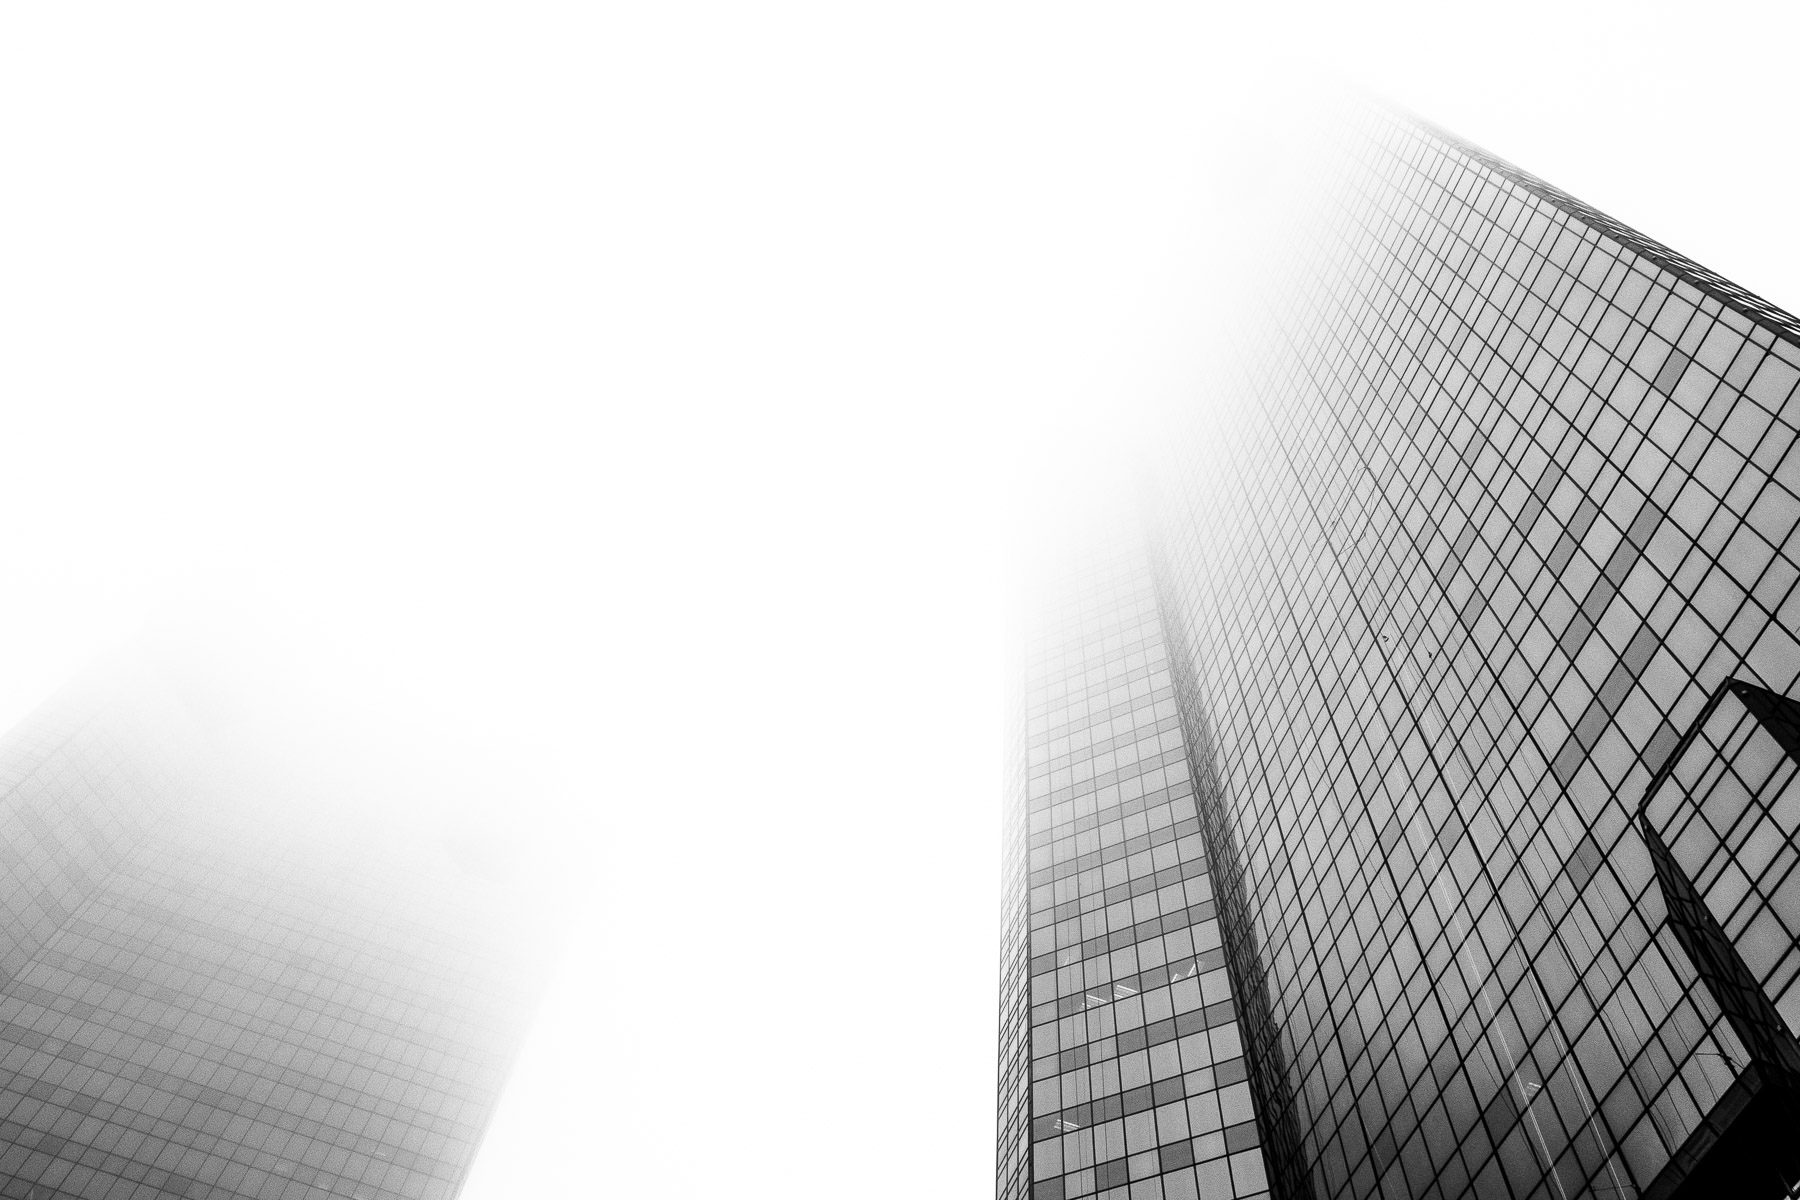 The two towers of the City Center Towers Complex—the D.R. Horton Tower and the Wells Fargo Tower—rise into the fog over Downtown Fort Worth, Texas.